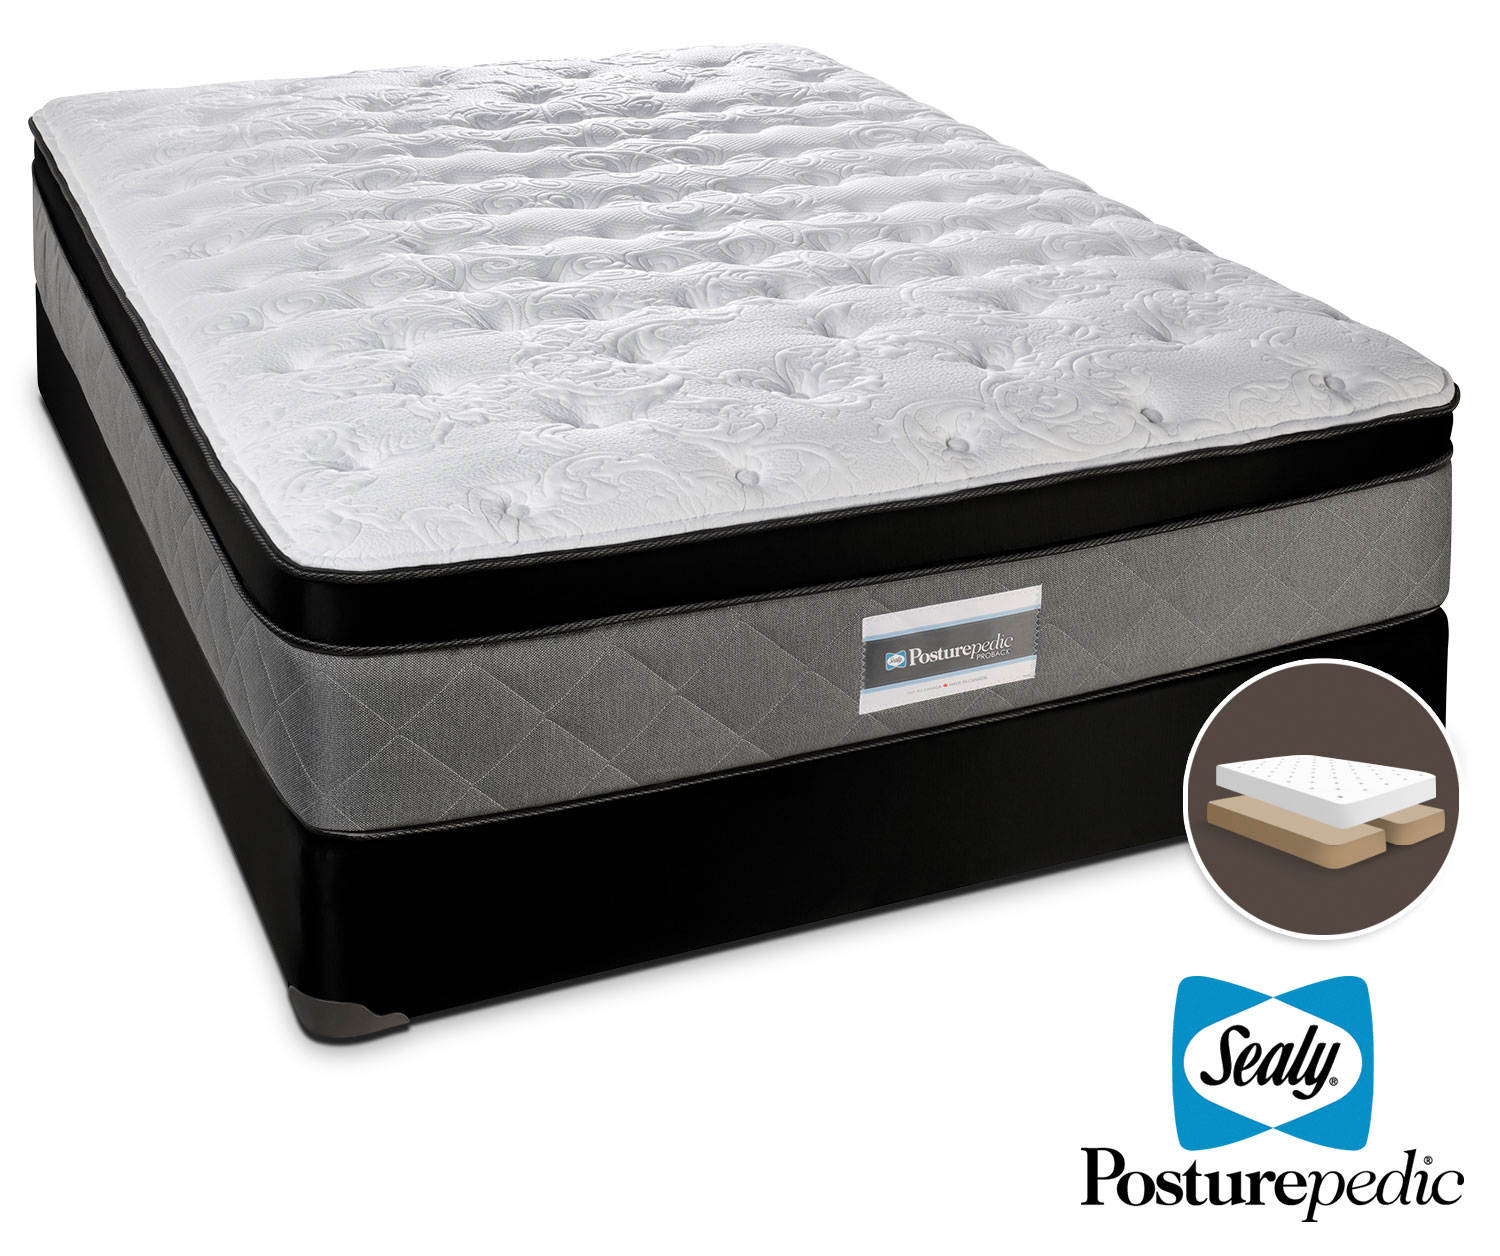 Sealy Scripture Firm King Mattress/Split Boxspring Set